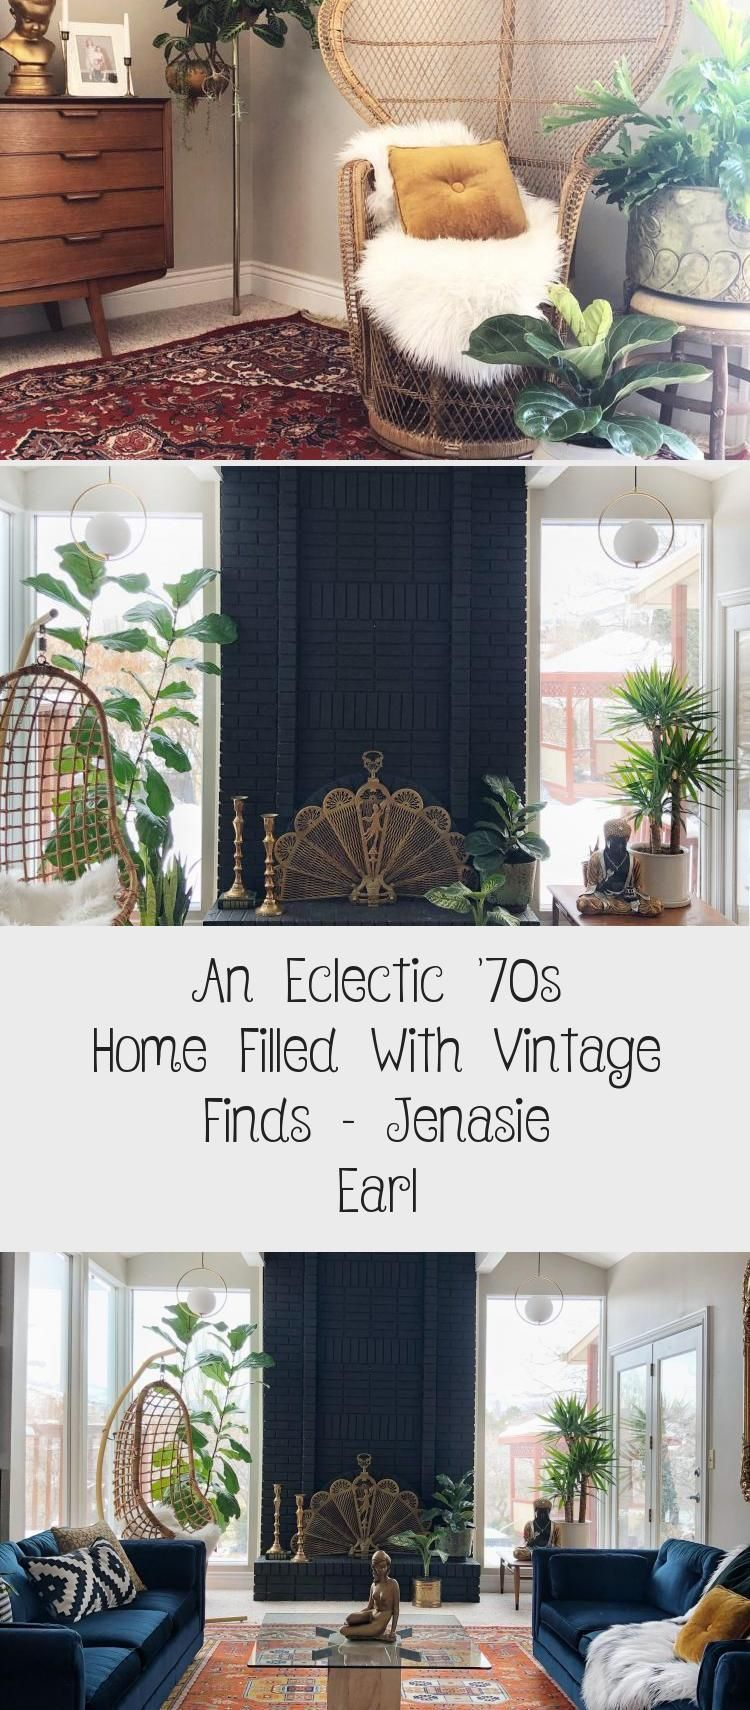 An Eclectic '70s Home Filled With Vintage Finds – Jenasie Earl - DECORATION -  Great guest room. An Eclectic '70s Home Filled With Vintage Finds – Jenasie Earl | Dark decor b - #70s #darkEclecticDecor #Decoration #Earl #Eclectic #EclecticDecorcolorful #EclecticDecorminimalist #EclecticDecorrustic #Filled #Finds #funkyEclecticDecor #Home #Jenasie #traditionalEclecticDecor #Vintage